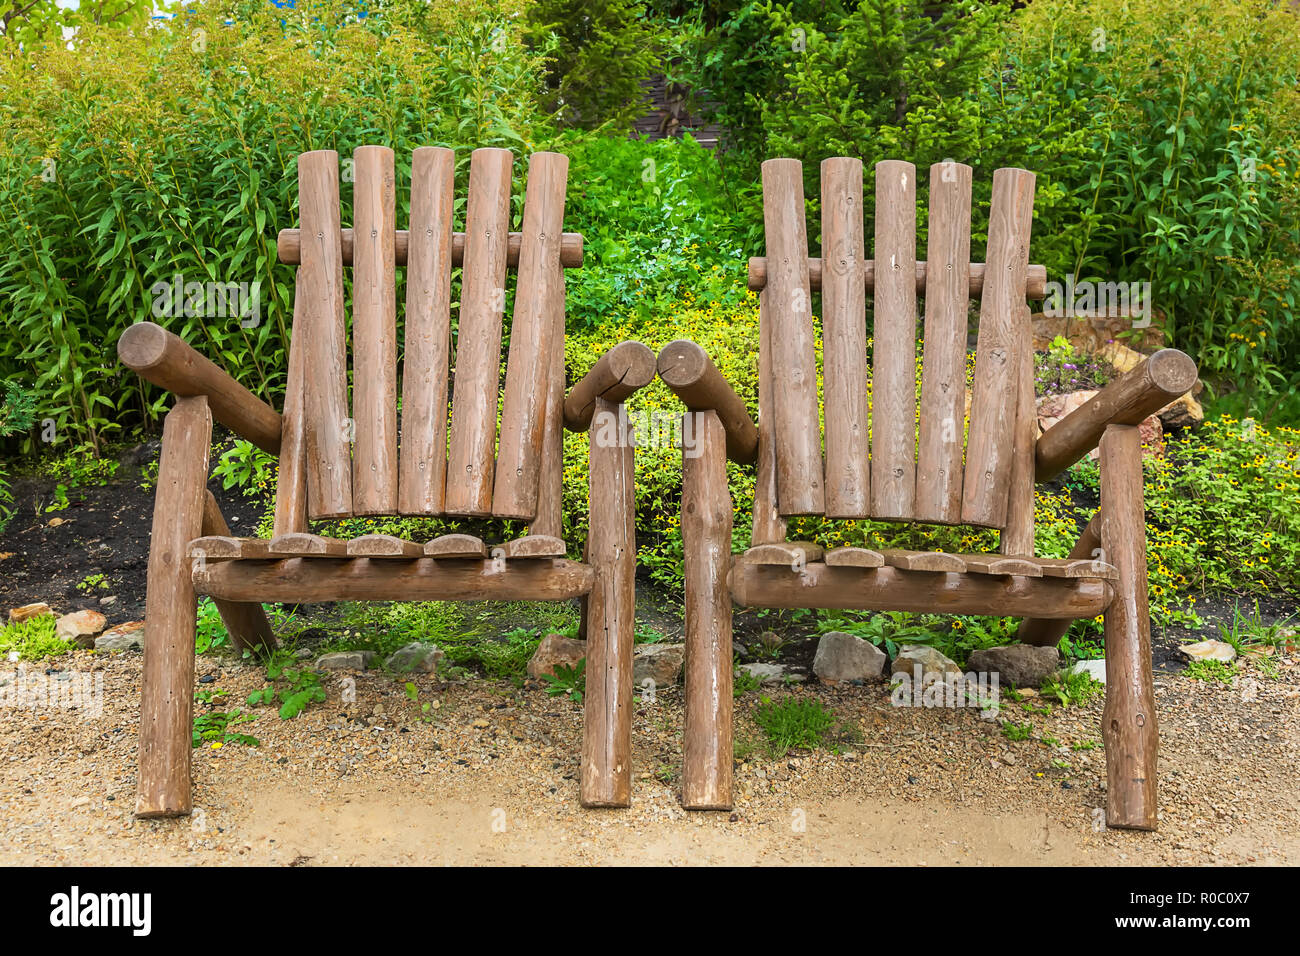 Wooden chairs made of rough wood trunks for relaxing in a park on the nature Stock Photo